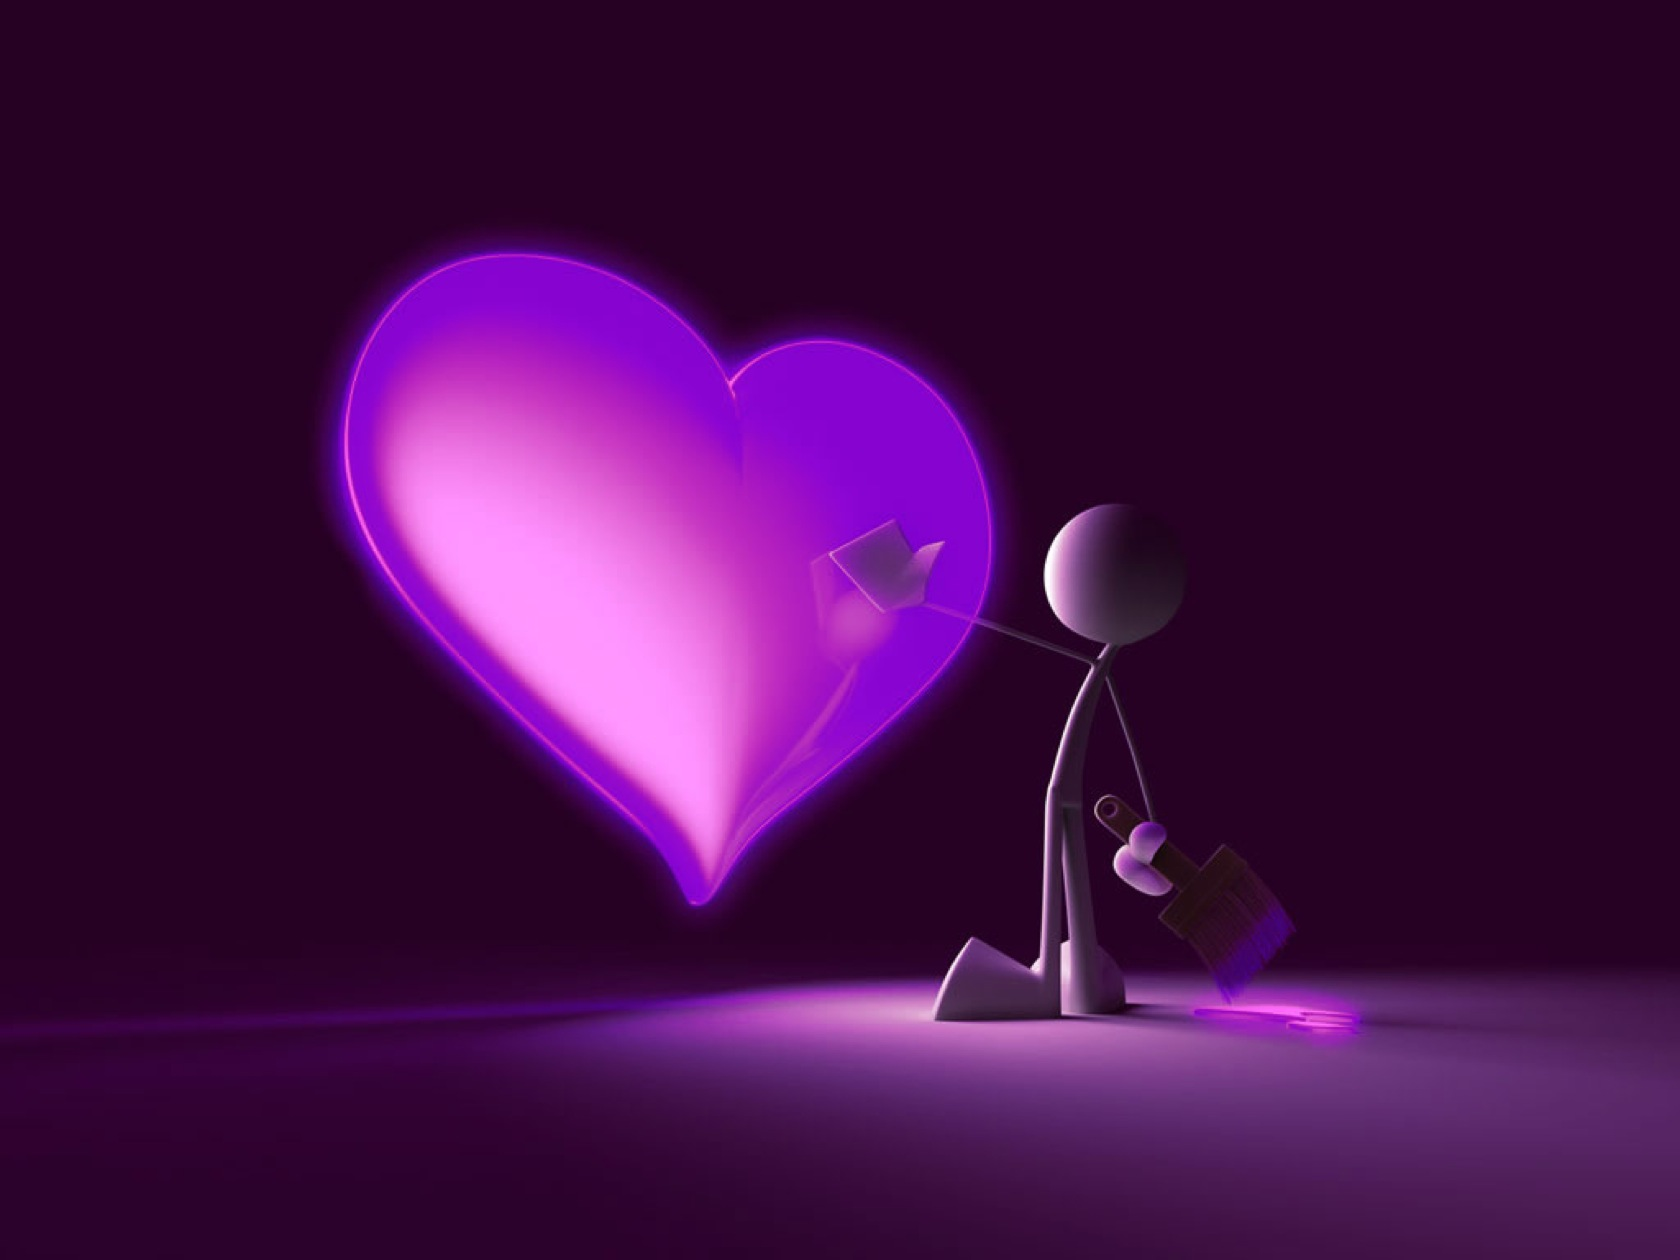 Heart In Love Wallpaper Hd: Love Wallpaper Purple Heart - HD Desktop Wallpapers